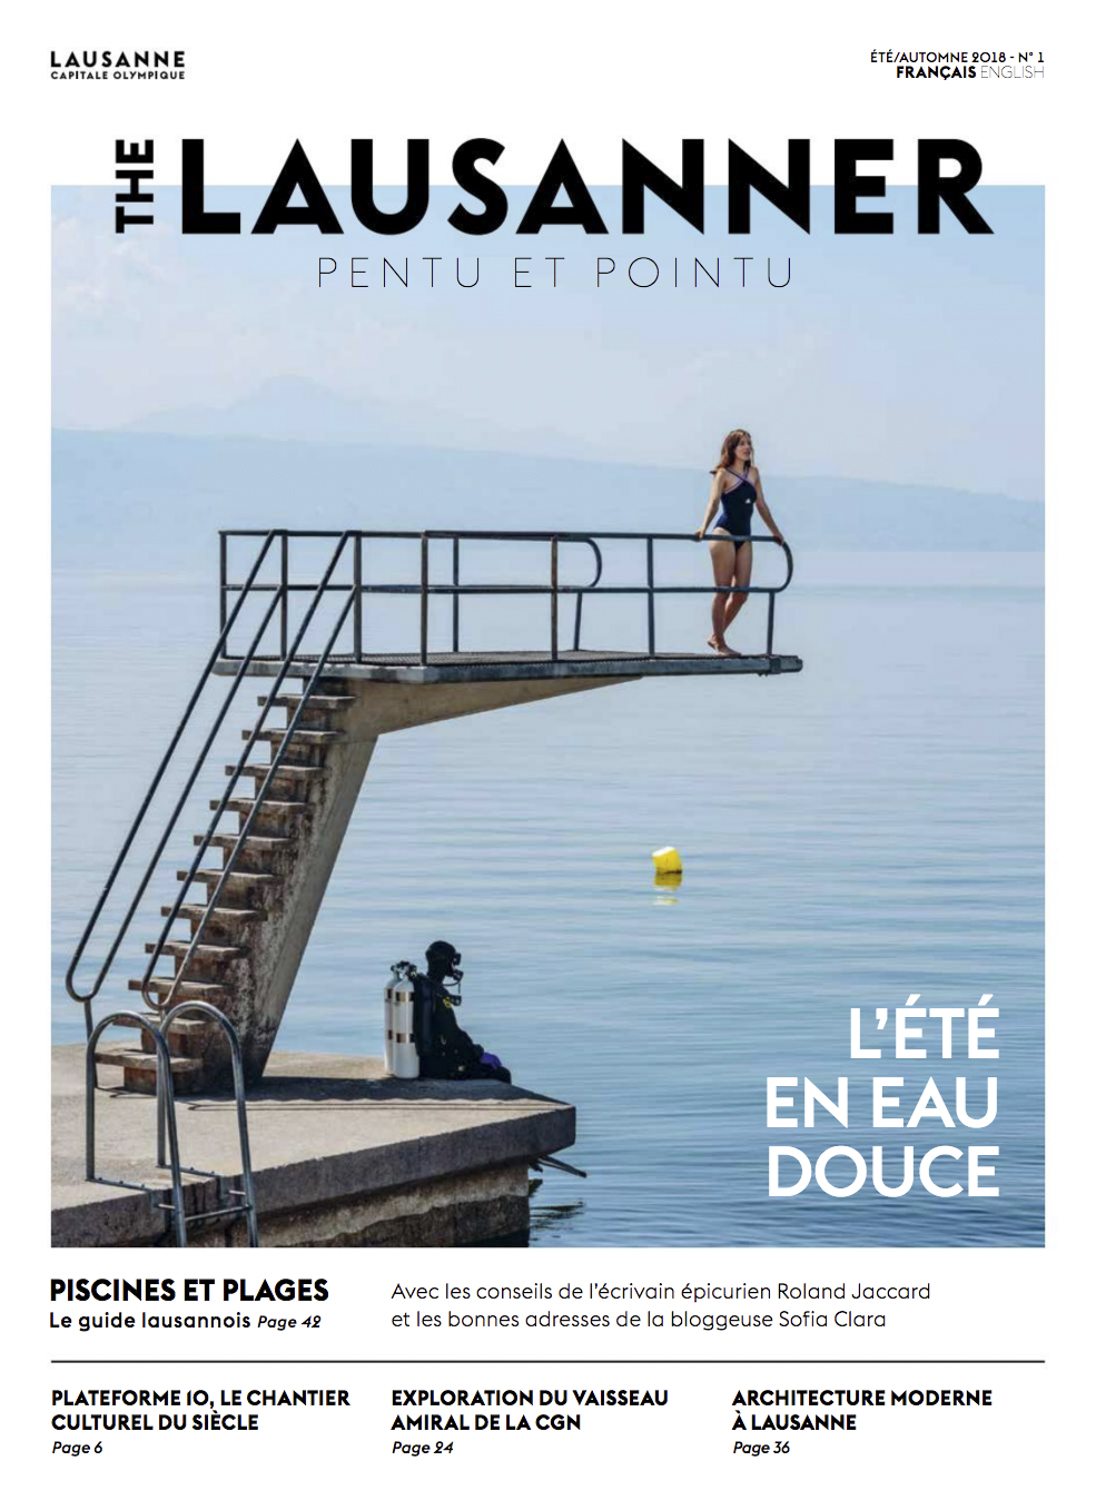 The Lausanner Cover